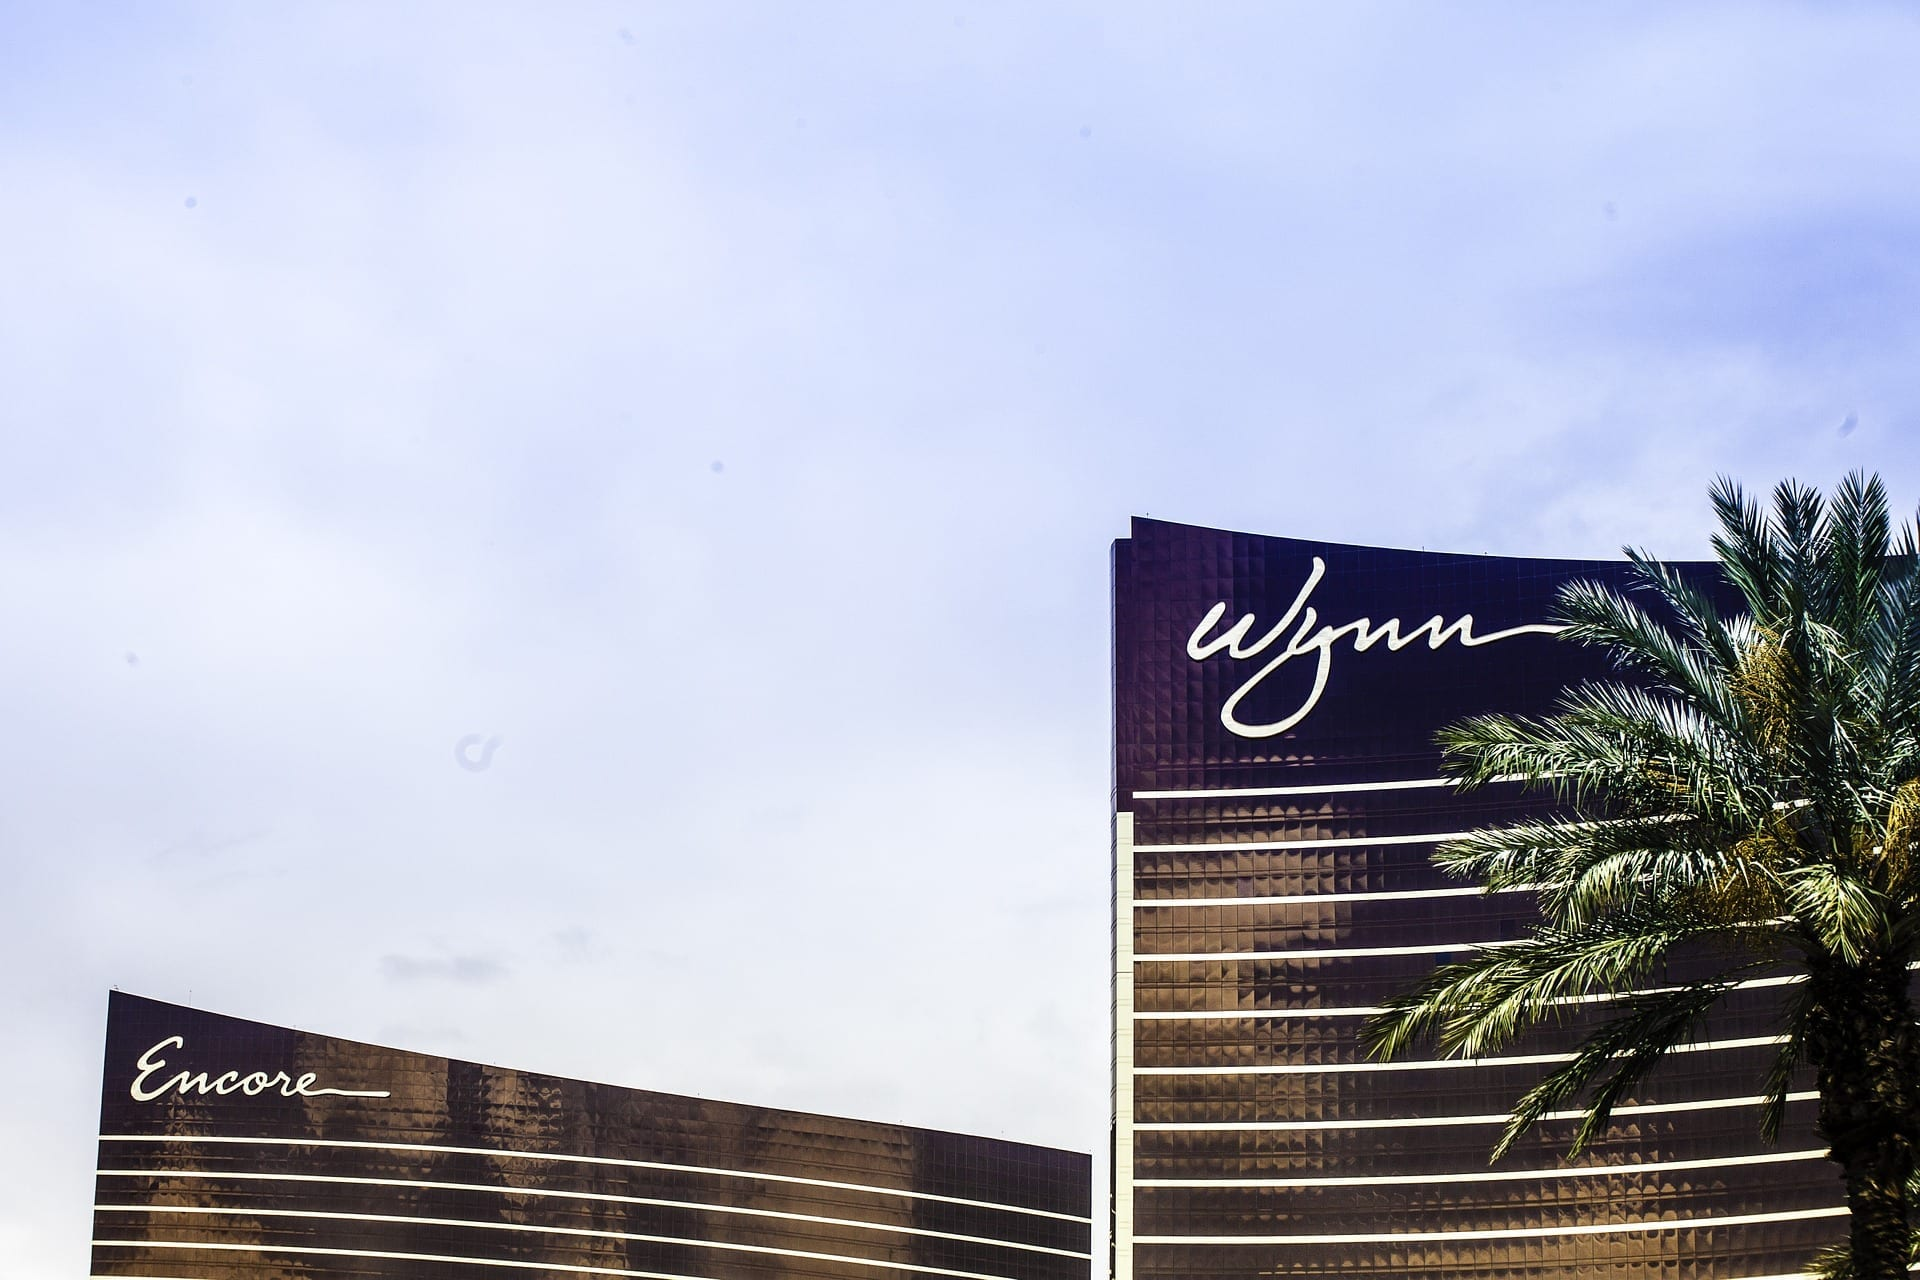 An image of the Wynn Hotel, recommend luxury accommodation on the Las Vegas strip